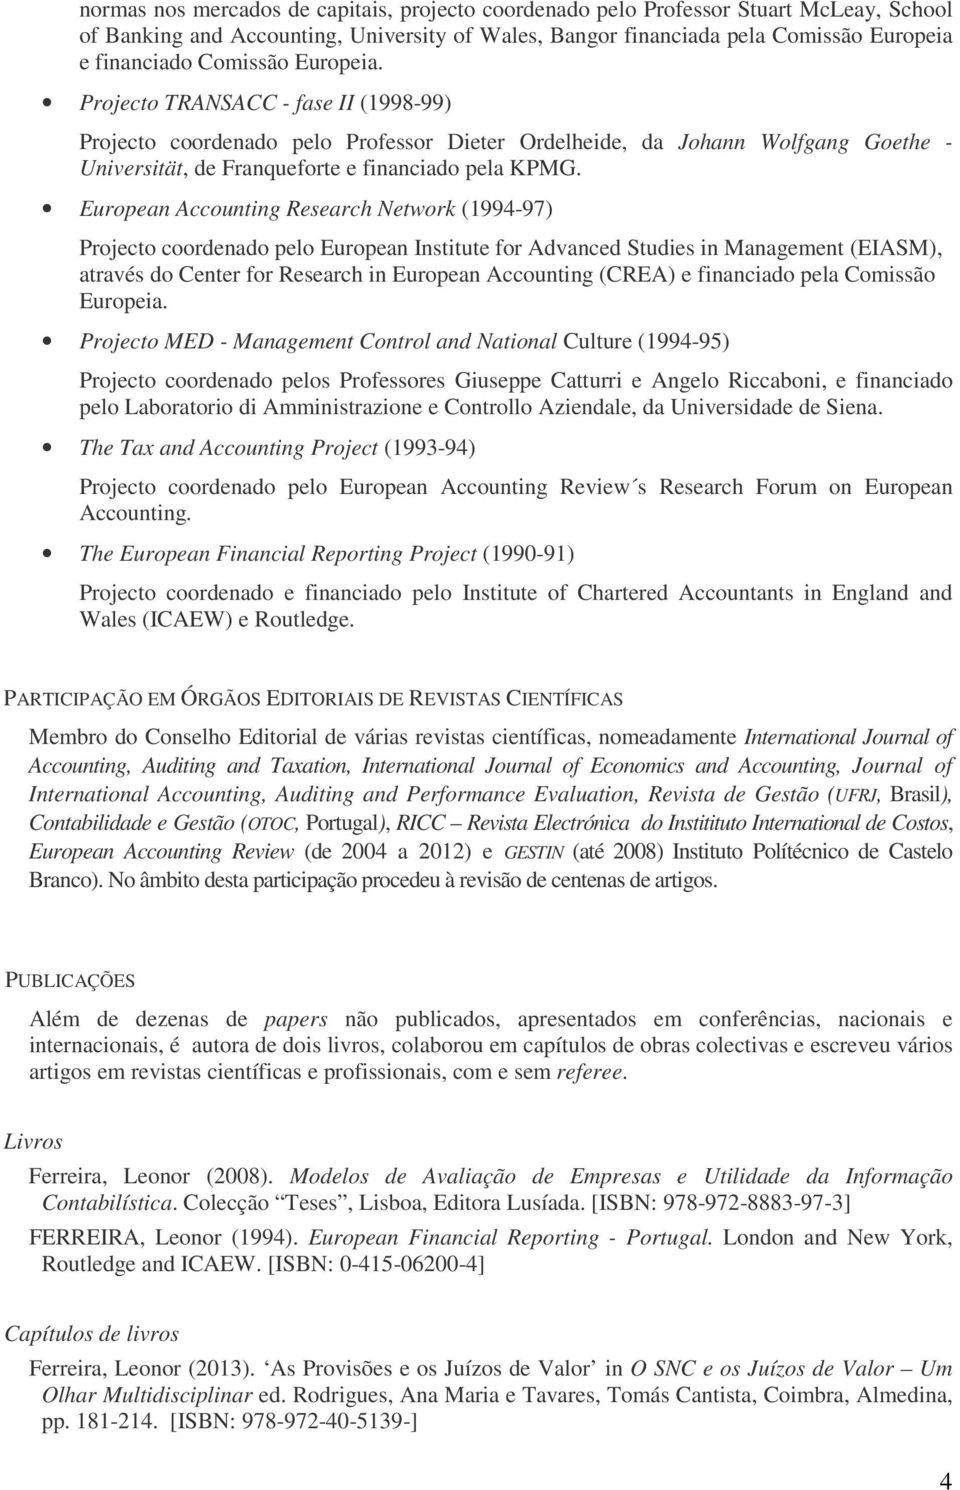 European Accounting Research Network (1994-97) Projecto coordenado pelo European Institute for Advanced Studies in Management (EIASM), através do Center for Research in European Accounting (CREA) e